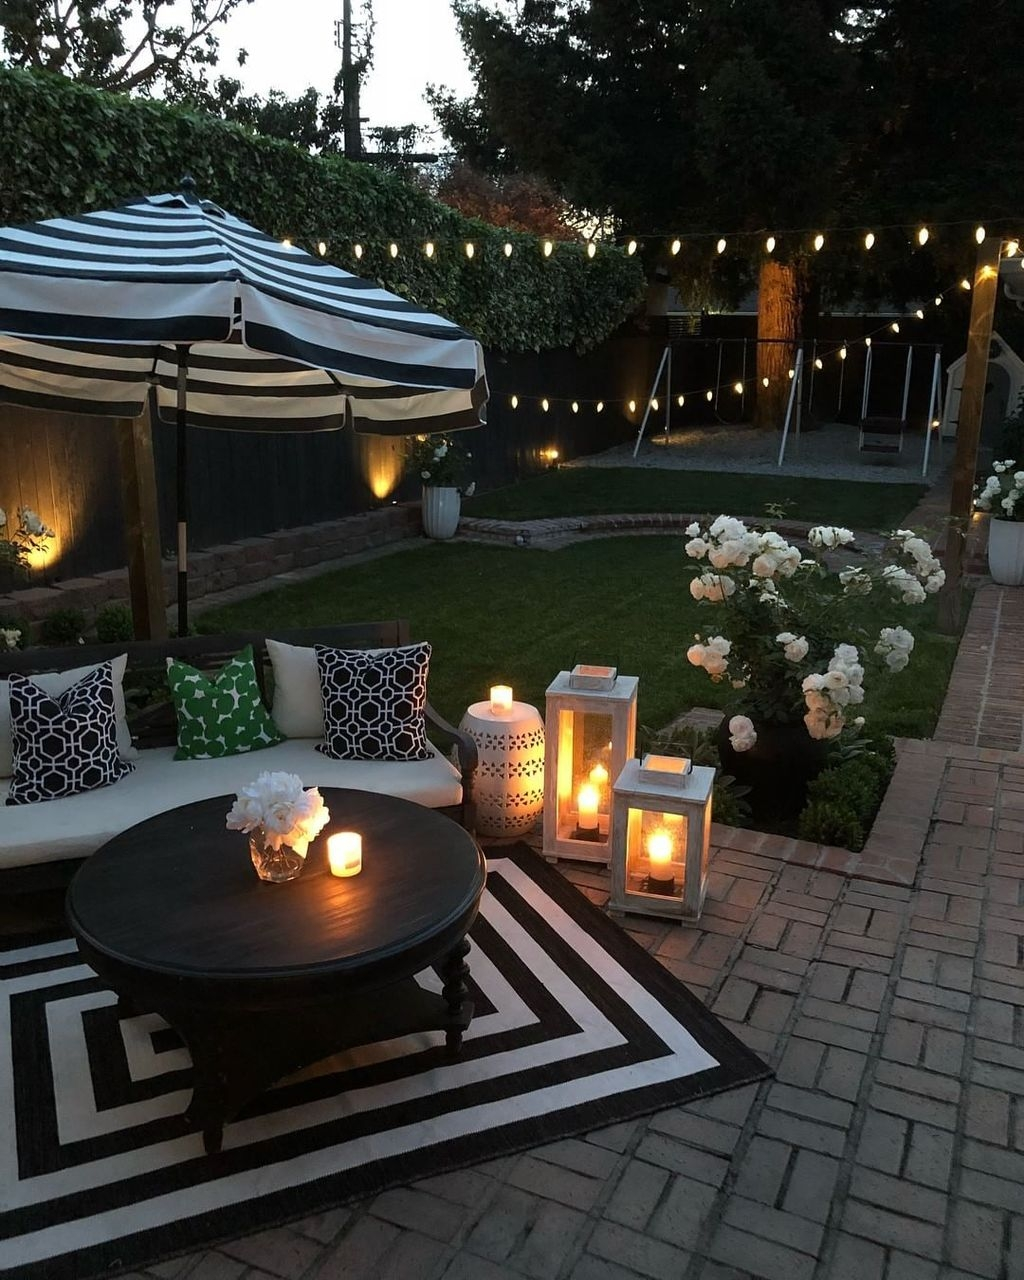 20+ Attractive Small Backyard Design Ideas On A Budget ... on Small Backyard Patio Designs id=13415